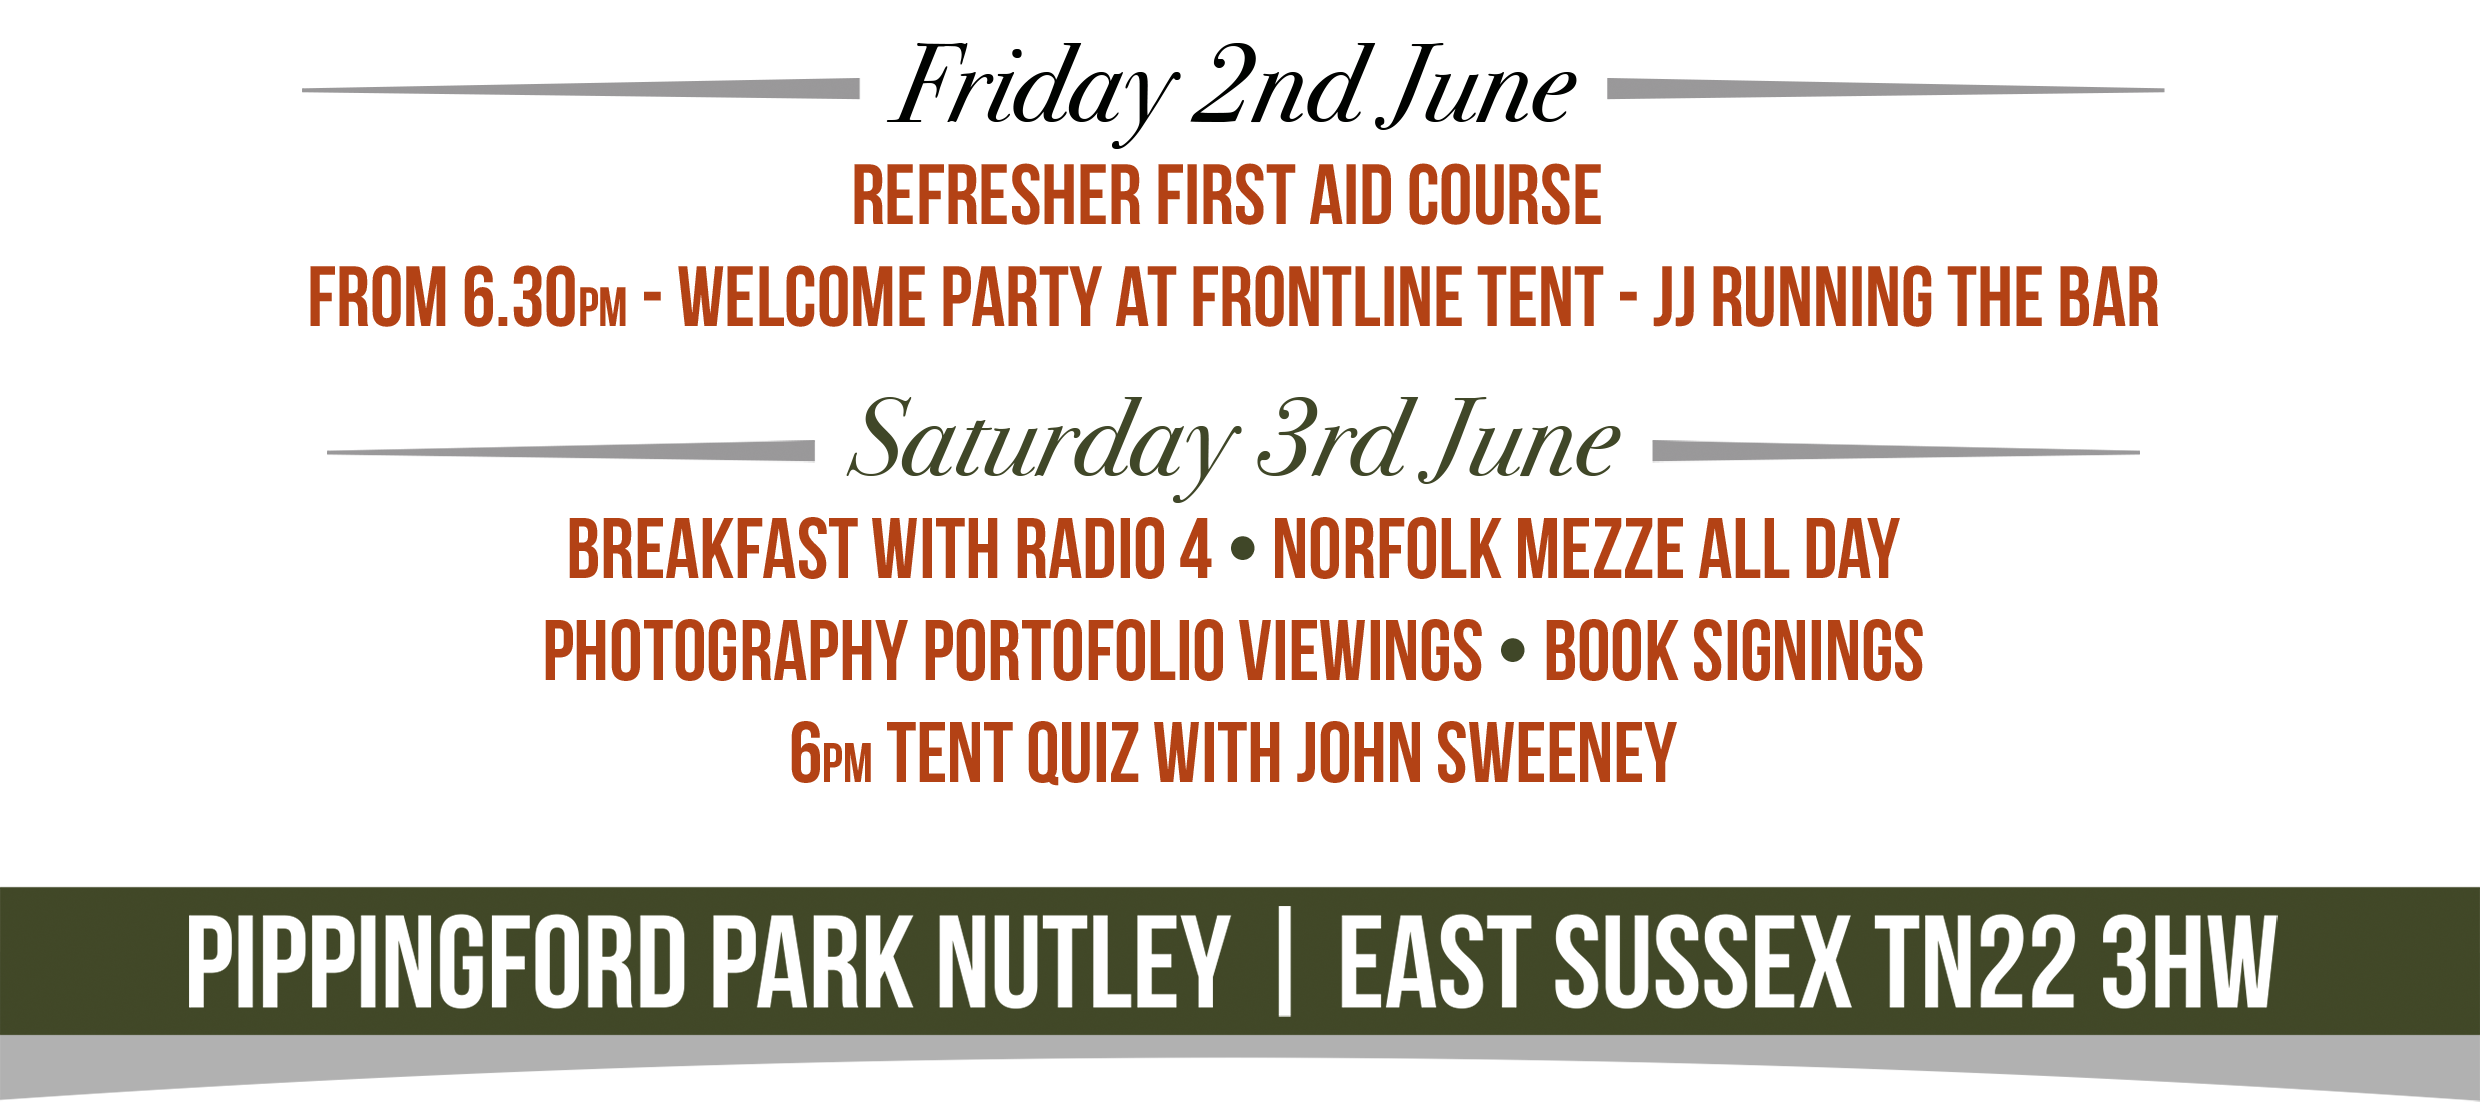 On Friday 2nd June, there will be a refresher first aid course. From 6:30PM, there will be a welcome party at the Frontline Tent with JJ running the bar. On Saturyday 3rd June, there will be Breakfast with Radio 4, Norfolk Mezze all day, Photography Portfolio viewings, book signings, and at 6pm, a tent quiz with John Sweeney.